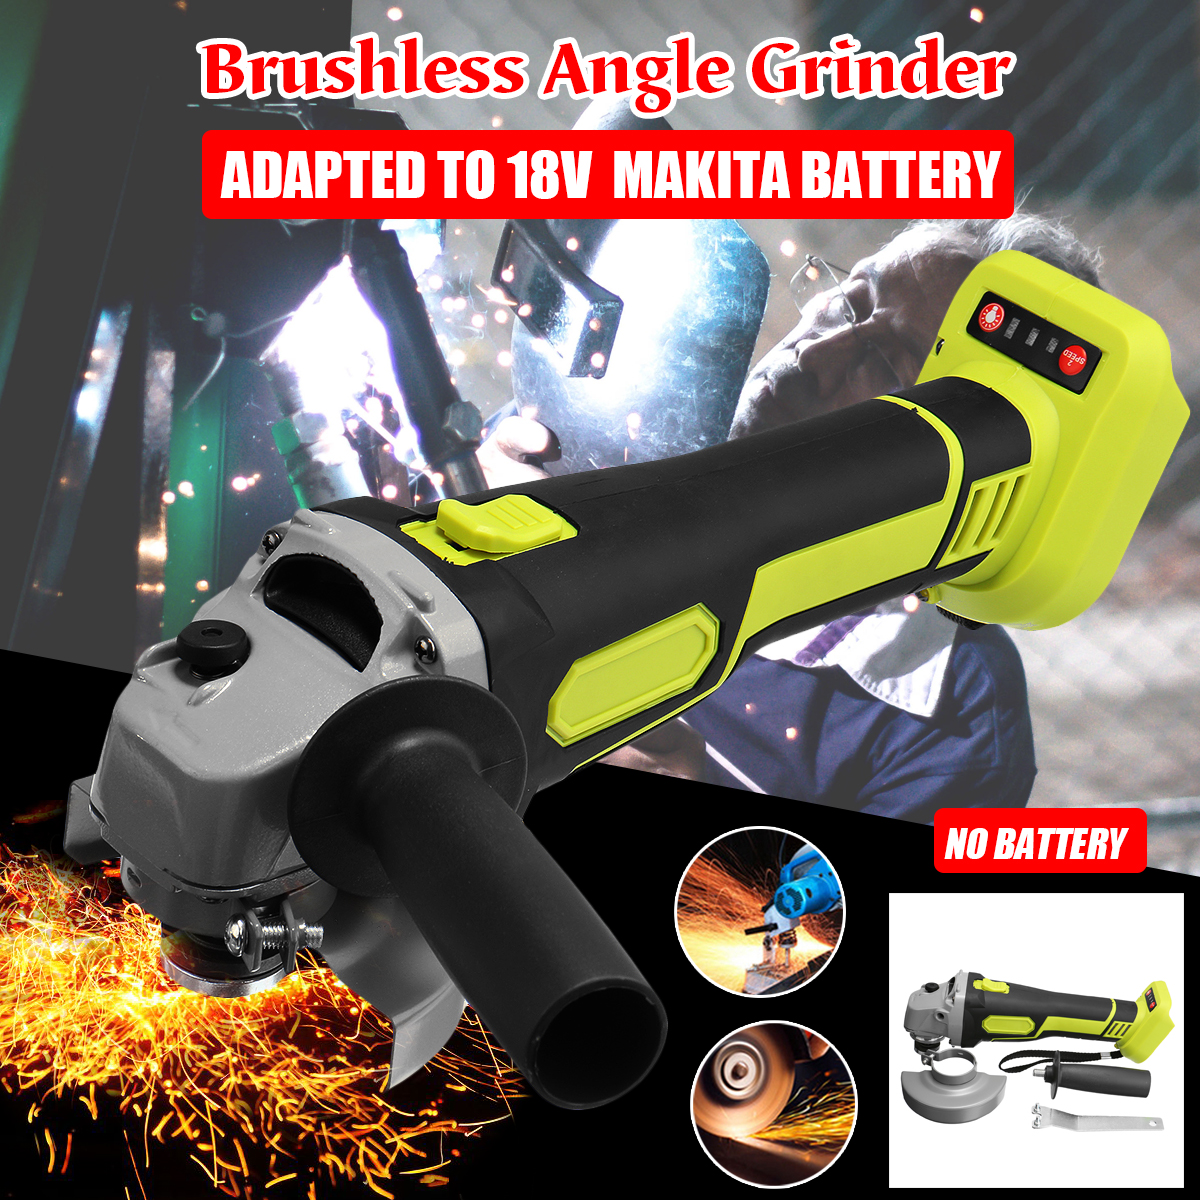 100mm 125mm Brushless Cordless Angle Grinder Variable 4 Speed Grinder Machine For 18V Makita Battery Without Battery